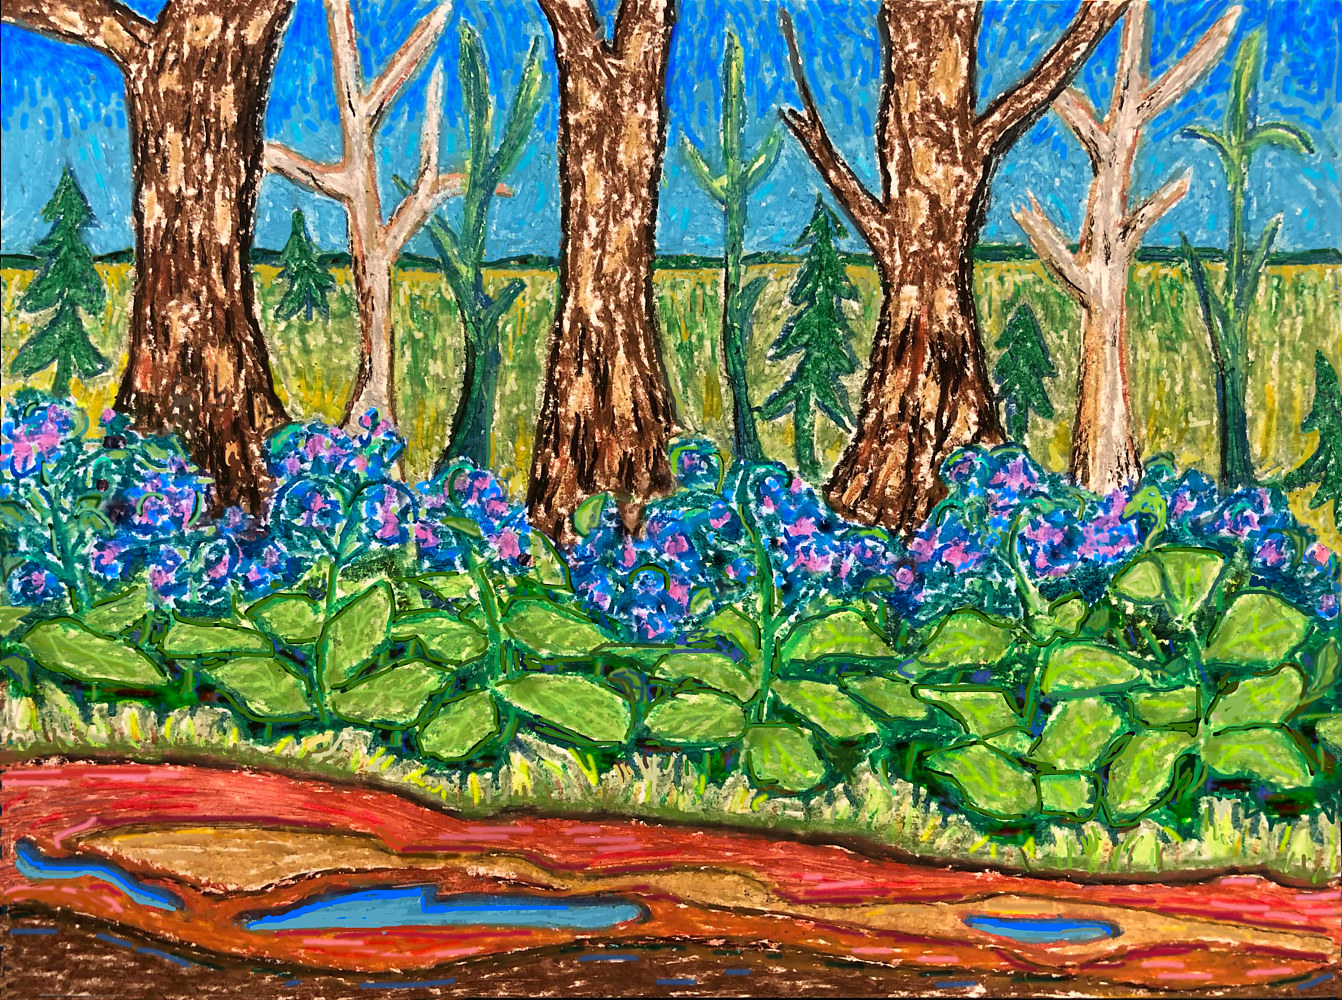 Oil painting Bluebells by the road by Anastasia O'melveny